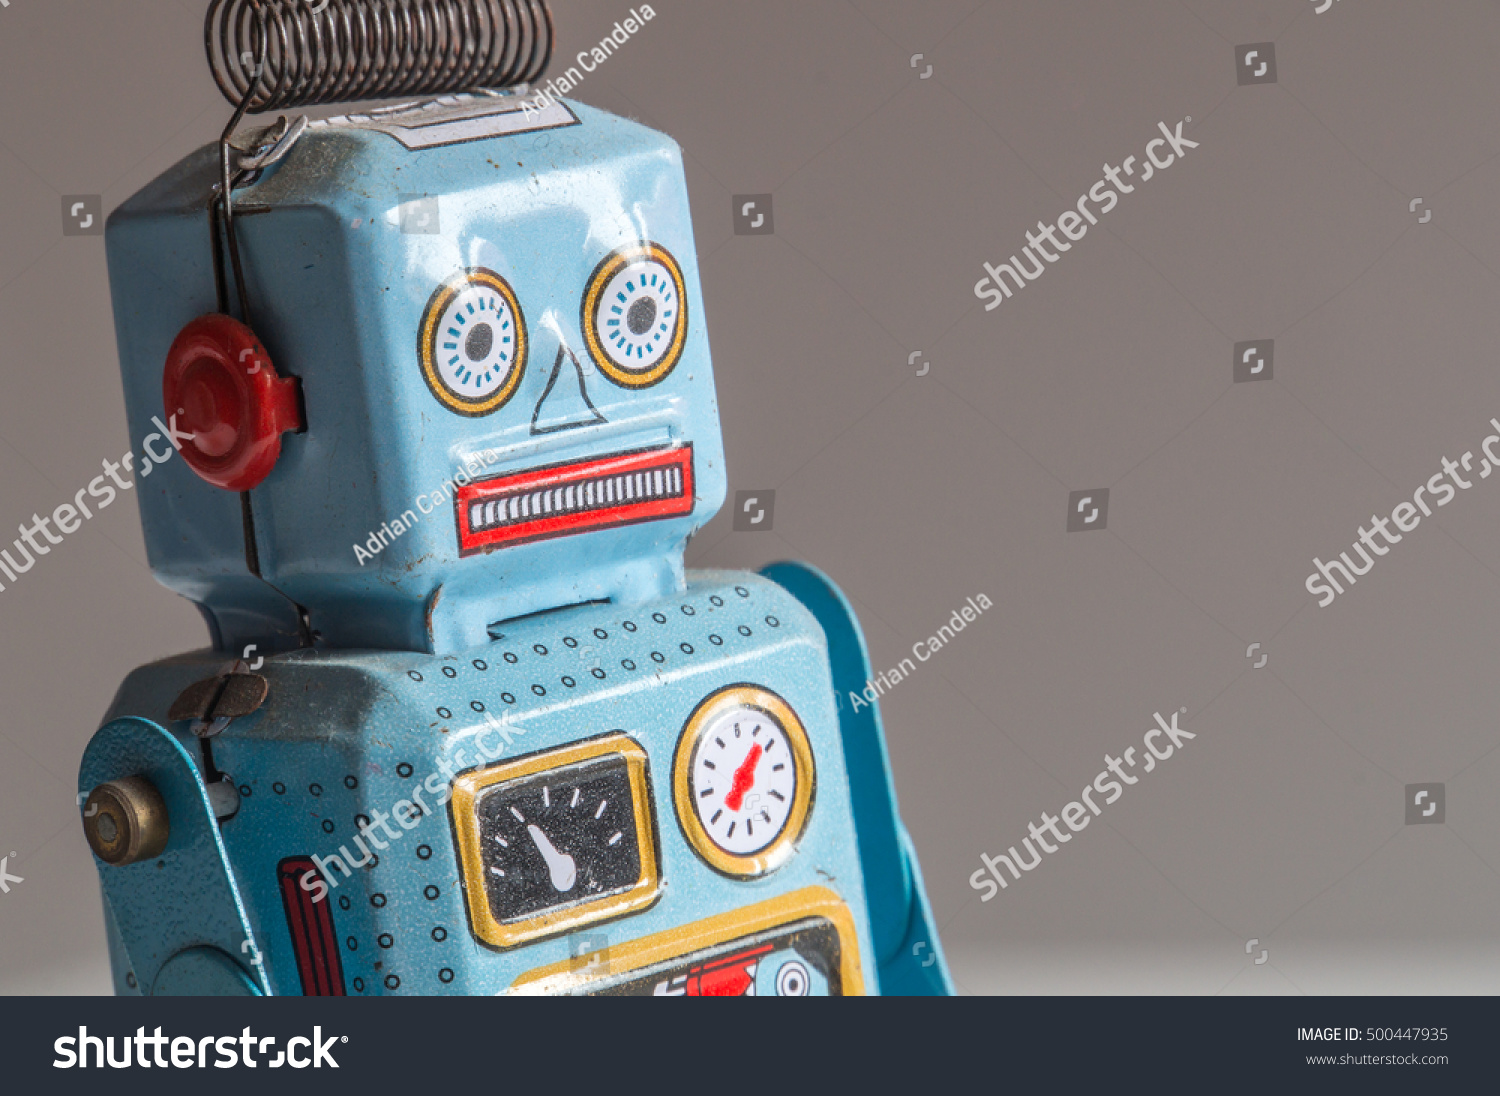 Three-quarter view of a blue and red tin robot toy's head and upper torso facing to the right on a blurred gradient background